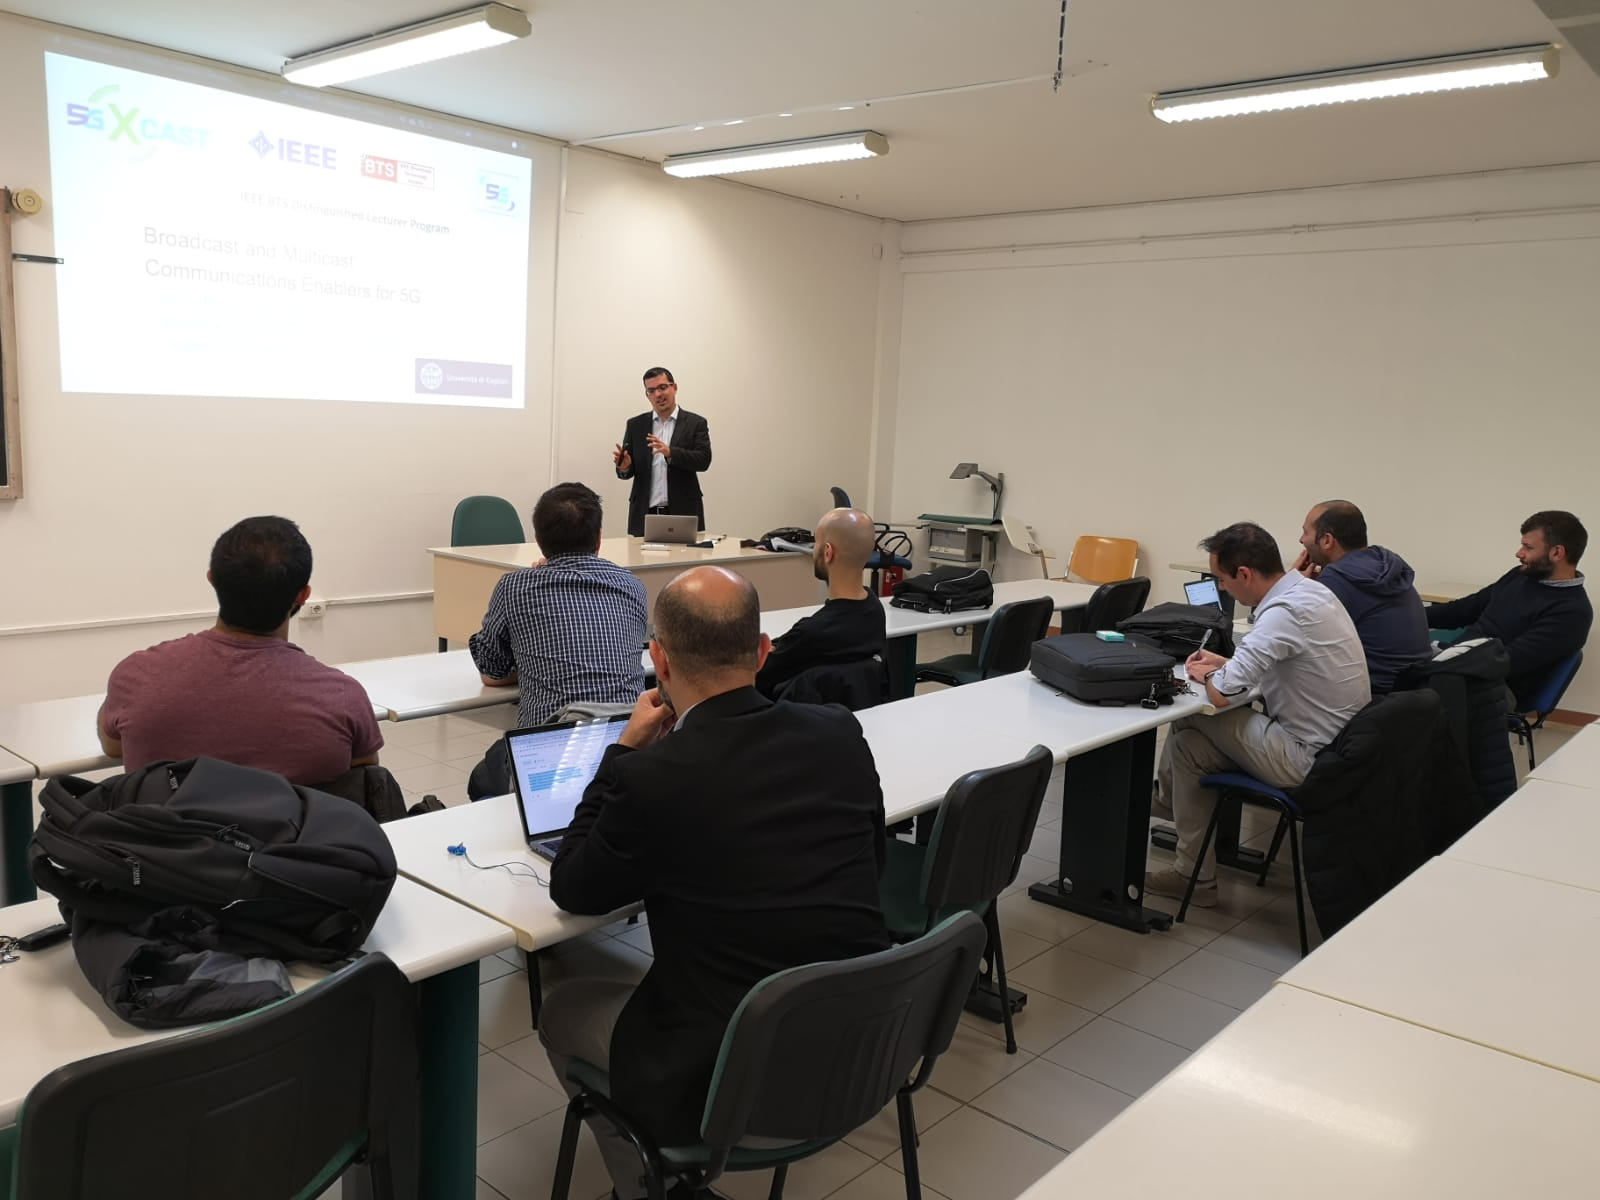 5G-Xcast lecture at the University of Cagliari